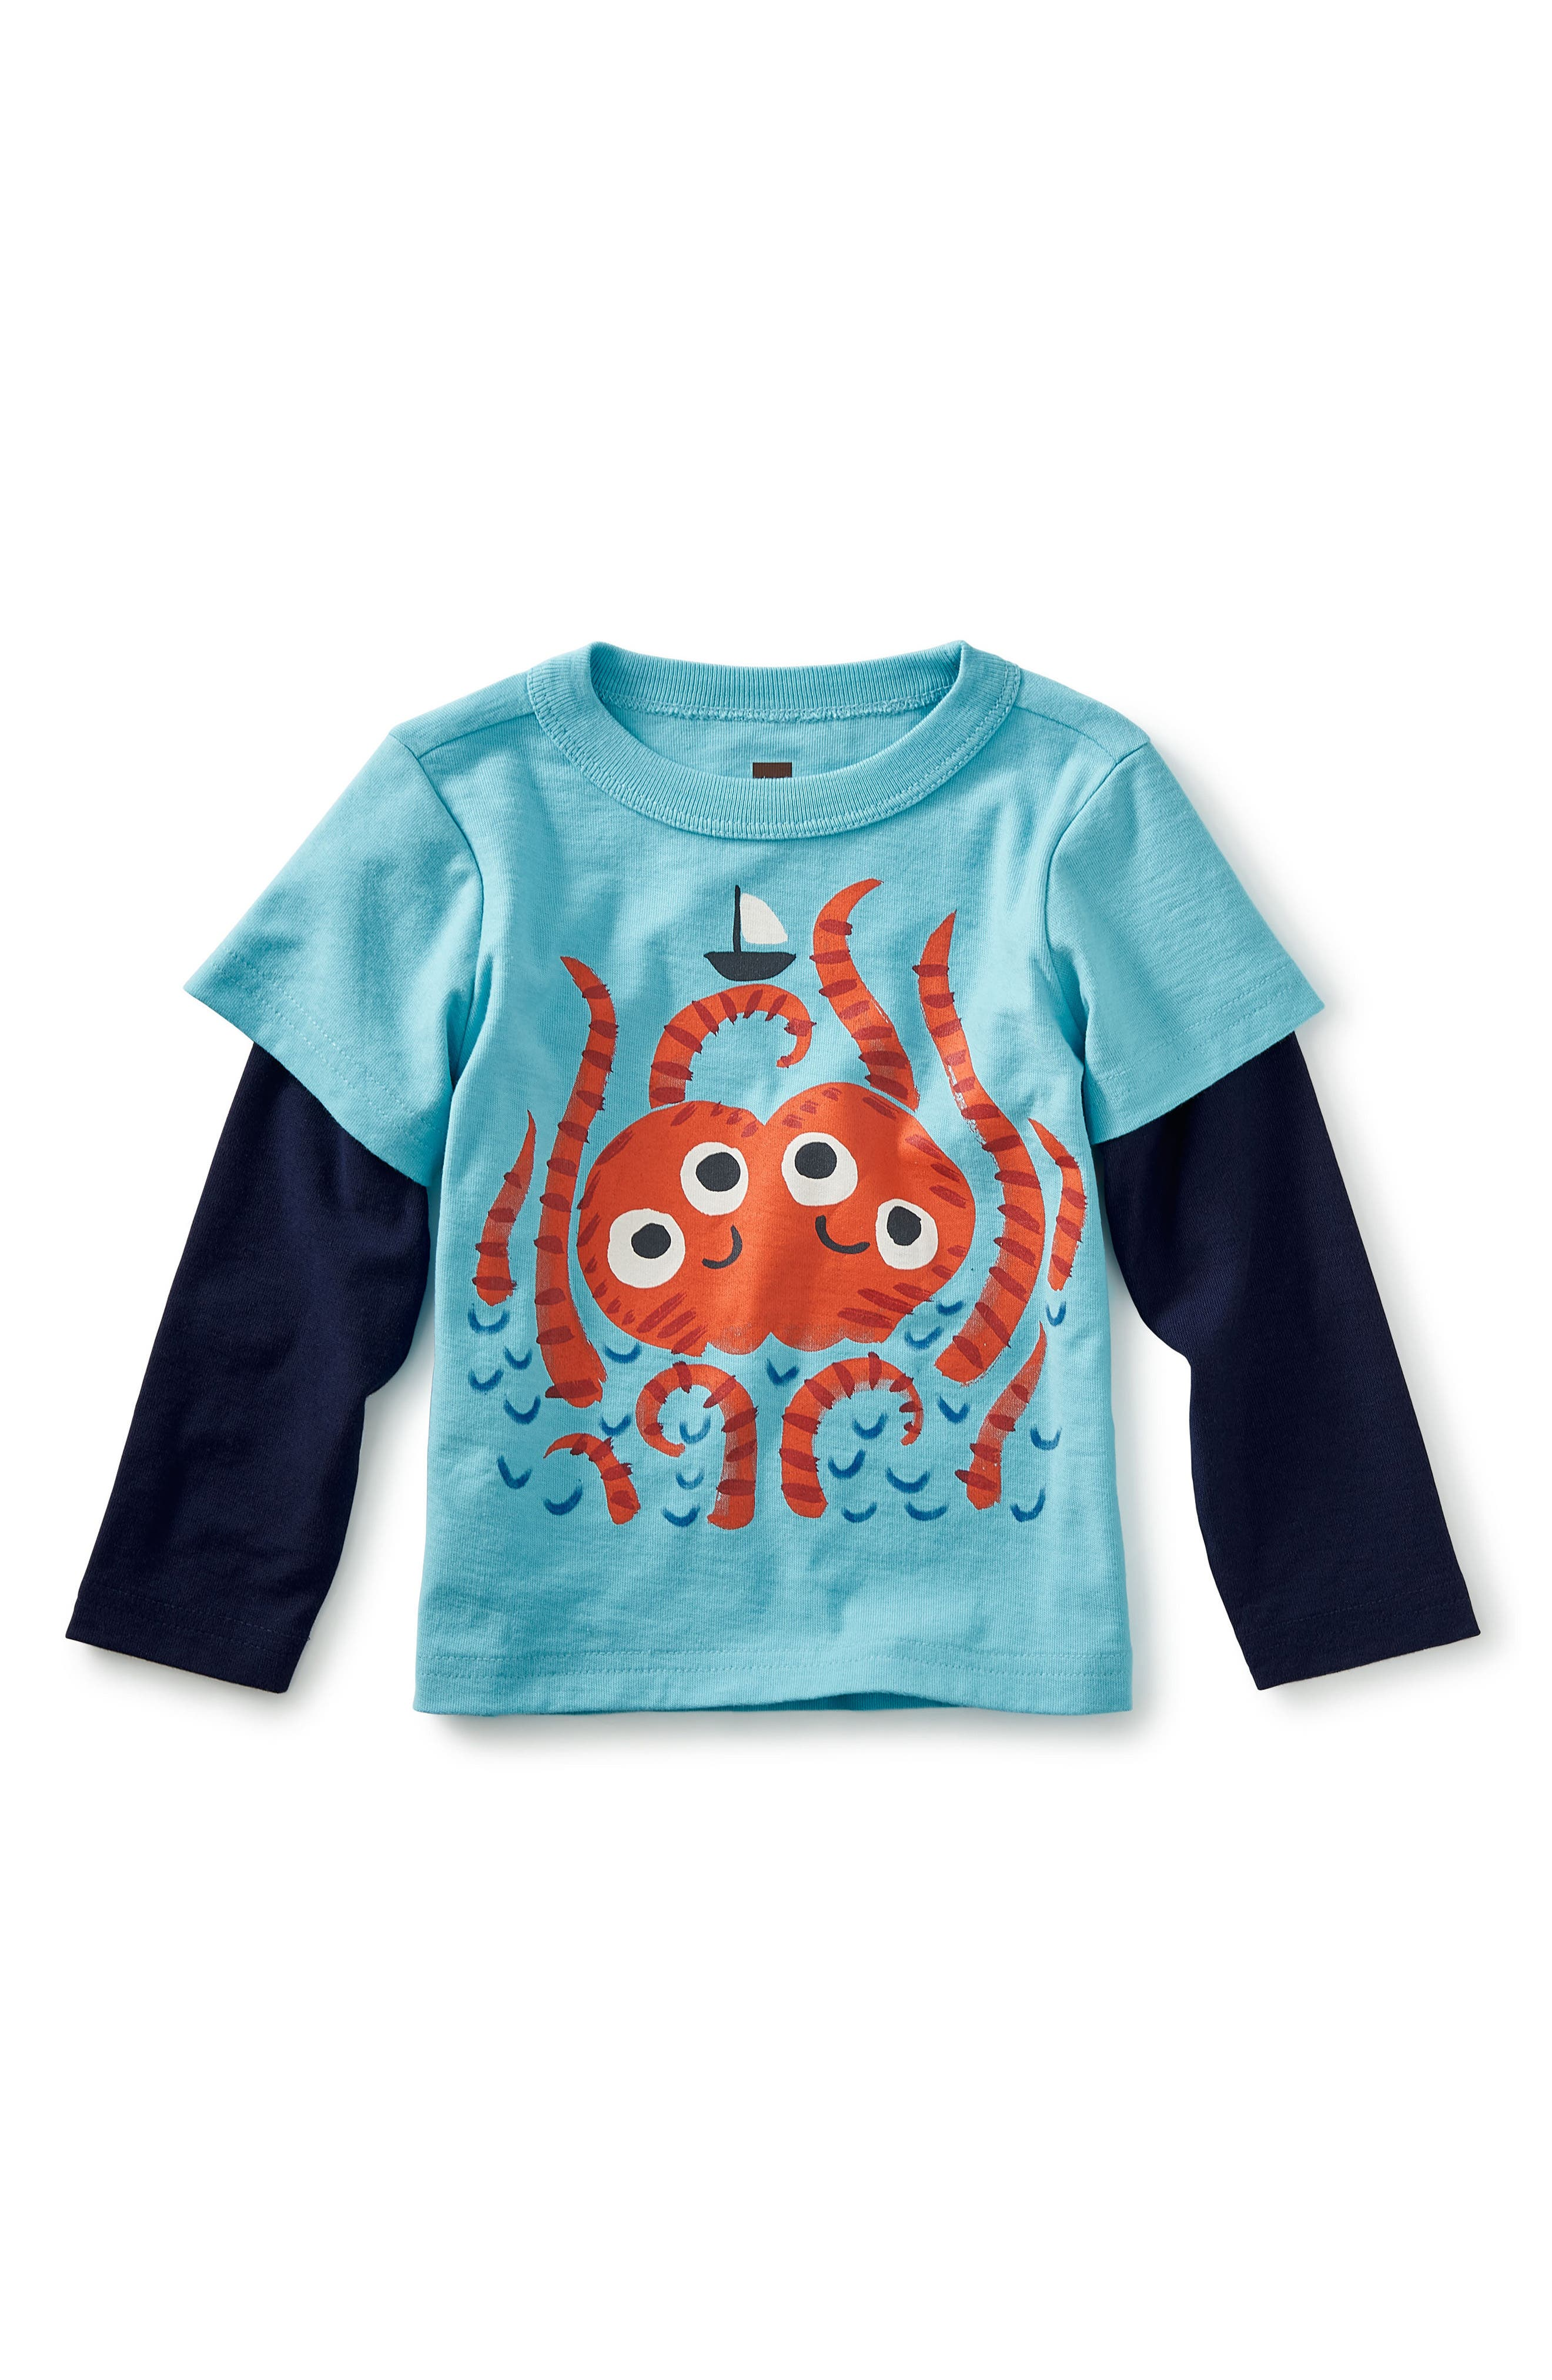 Alternate Image 1 Selected - Tea Collection Sea Monster Graphic T-Shirt (Baby Boys)